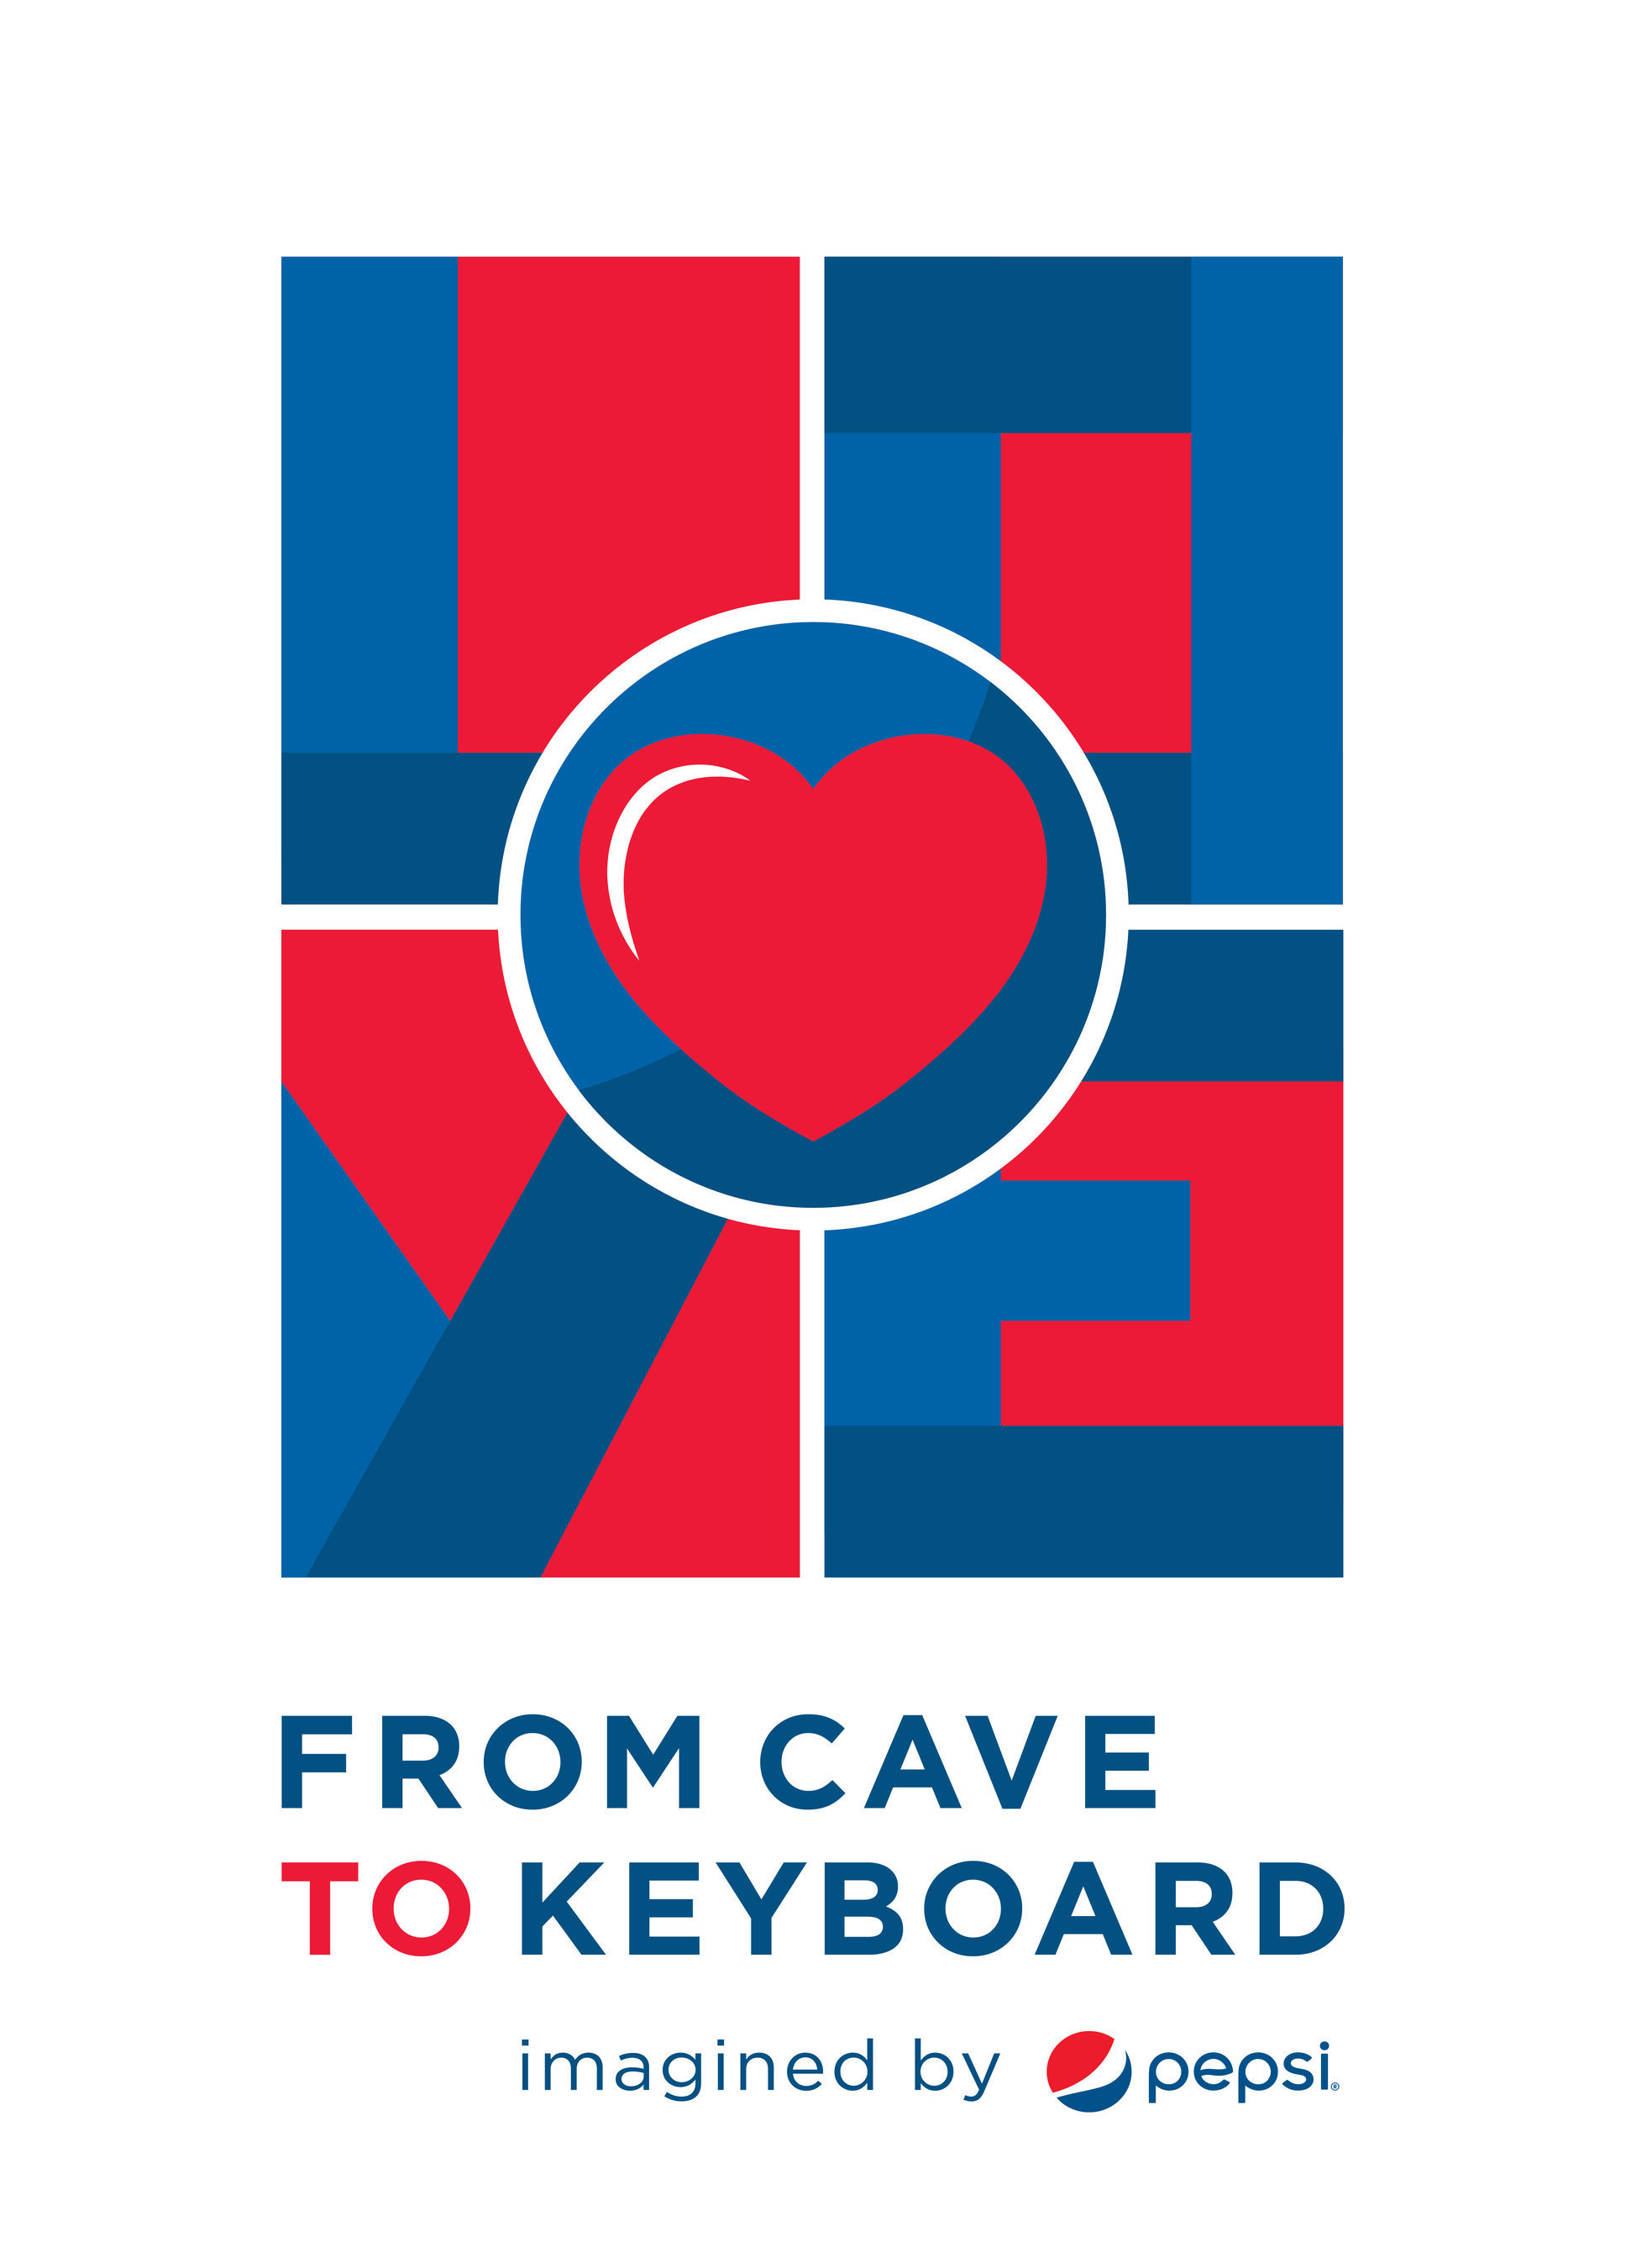 """""""LOVE: FROM CAVE TO KEYBOARD, IMAGINED BY PEPSI(R)"""" EXPLORES HISTORY OF NON-VERBAL COMMUNICATION IN NEW INTERACTIVE EXHIBIT"""